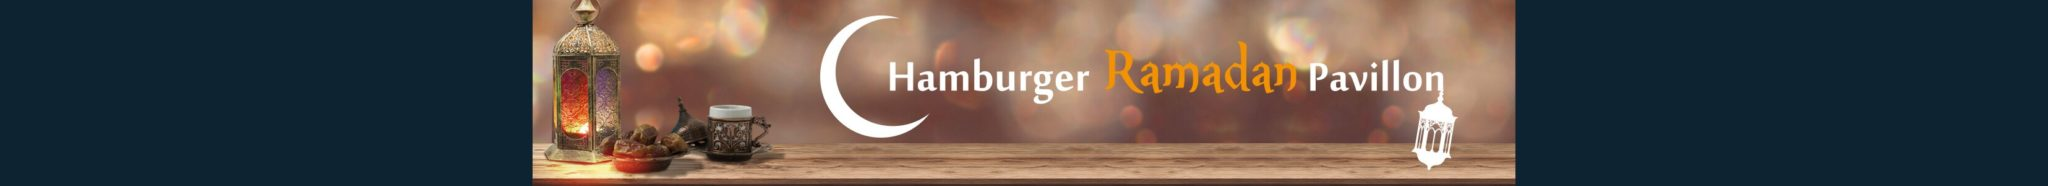 HAMBURGER RAMADAN PAVILLON - Header